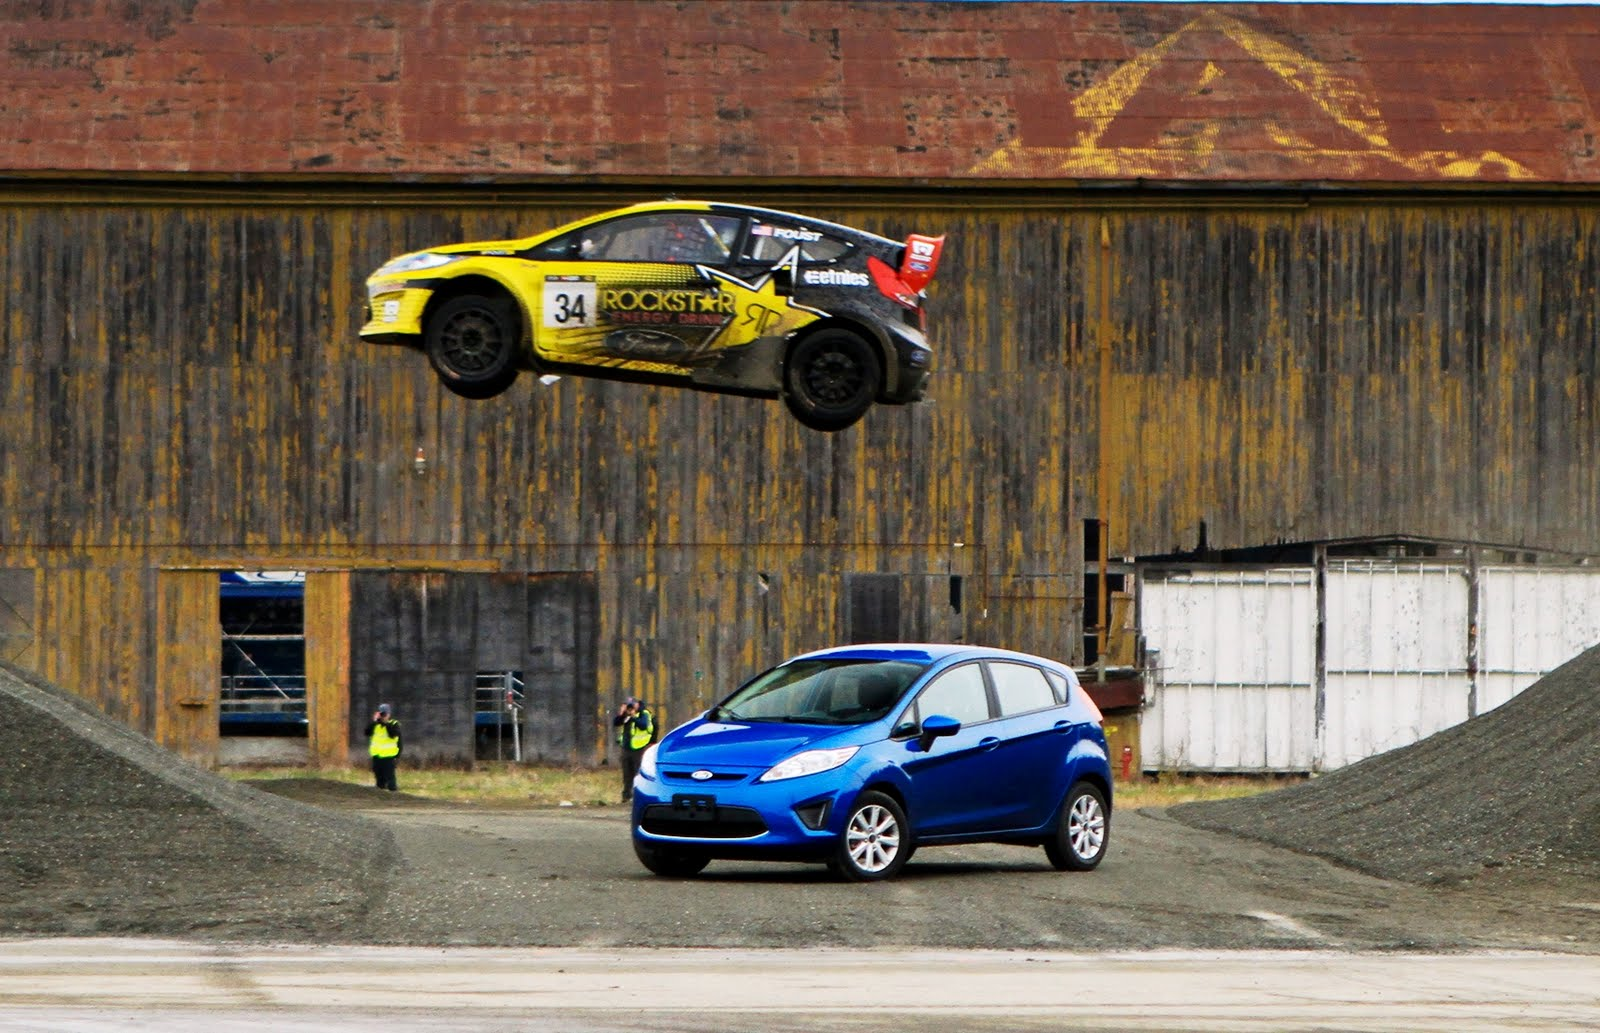 Tanners Foust Ford Fiesta Rally Car